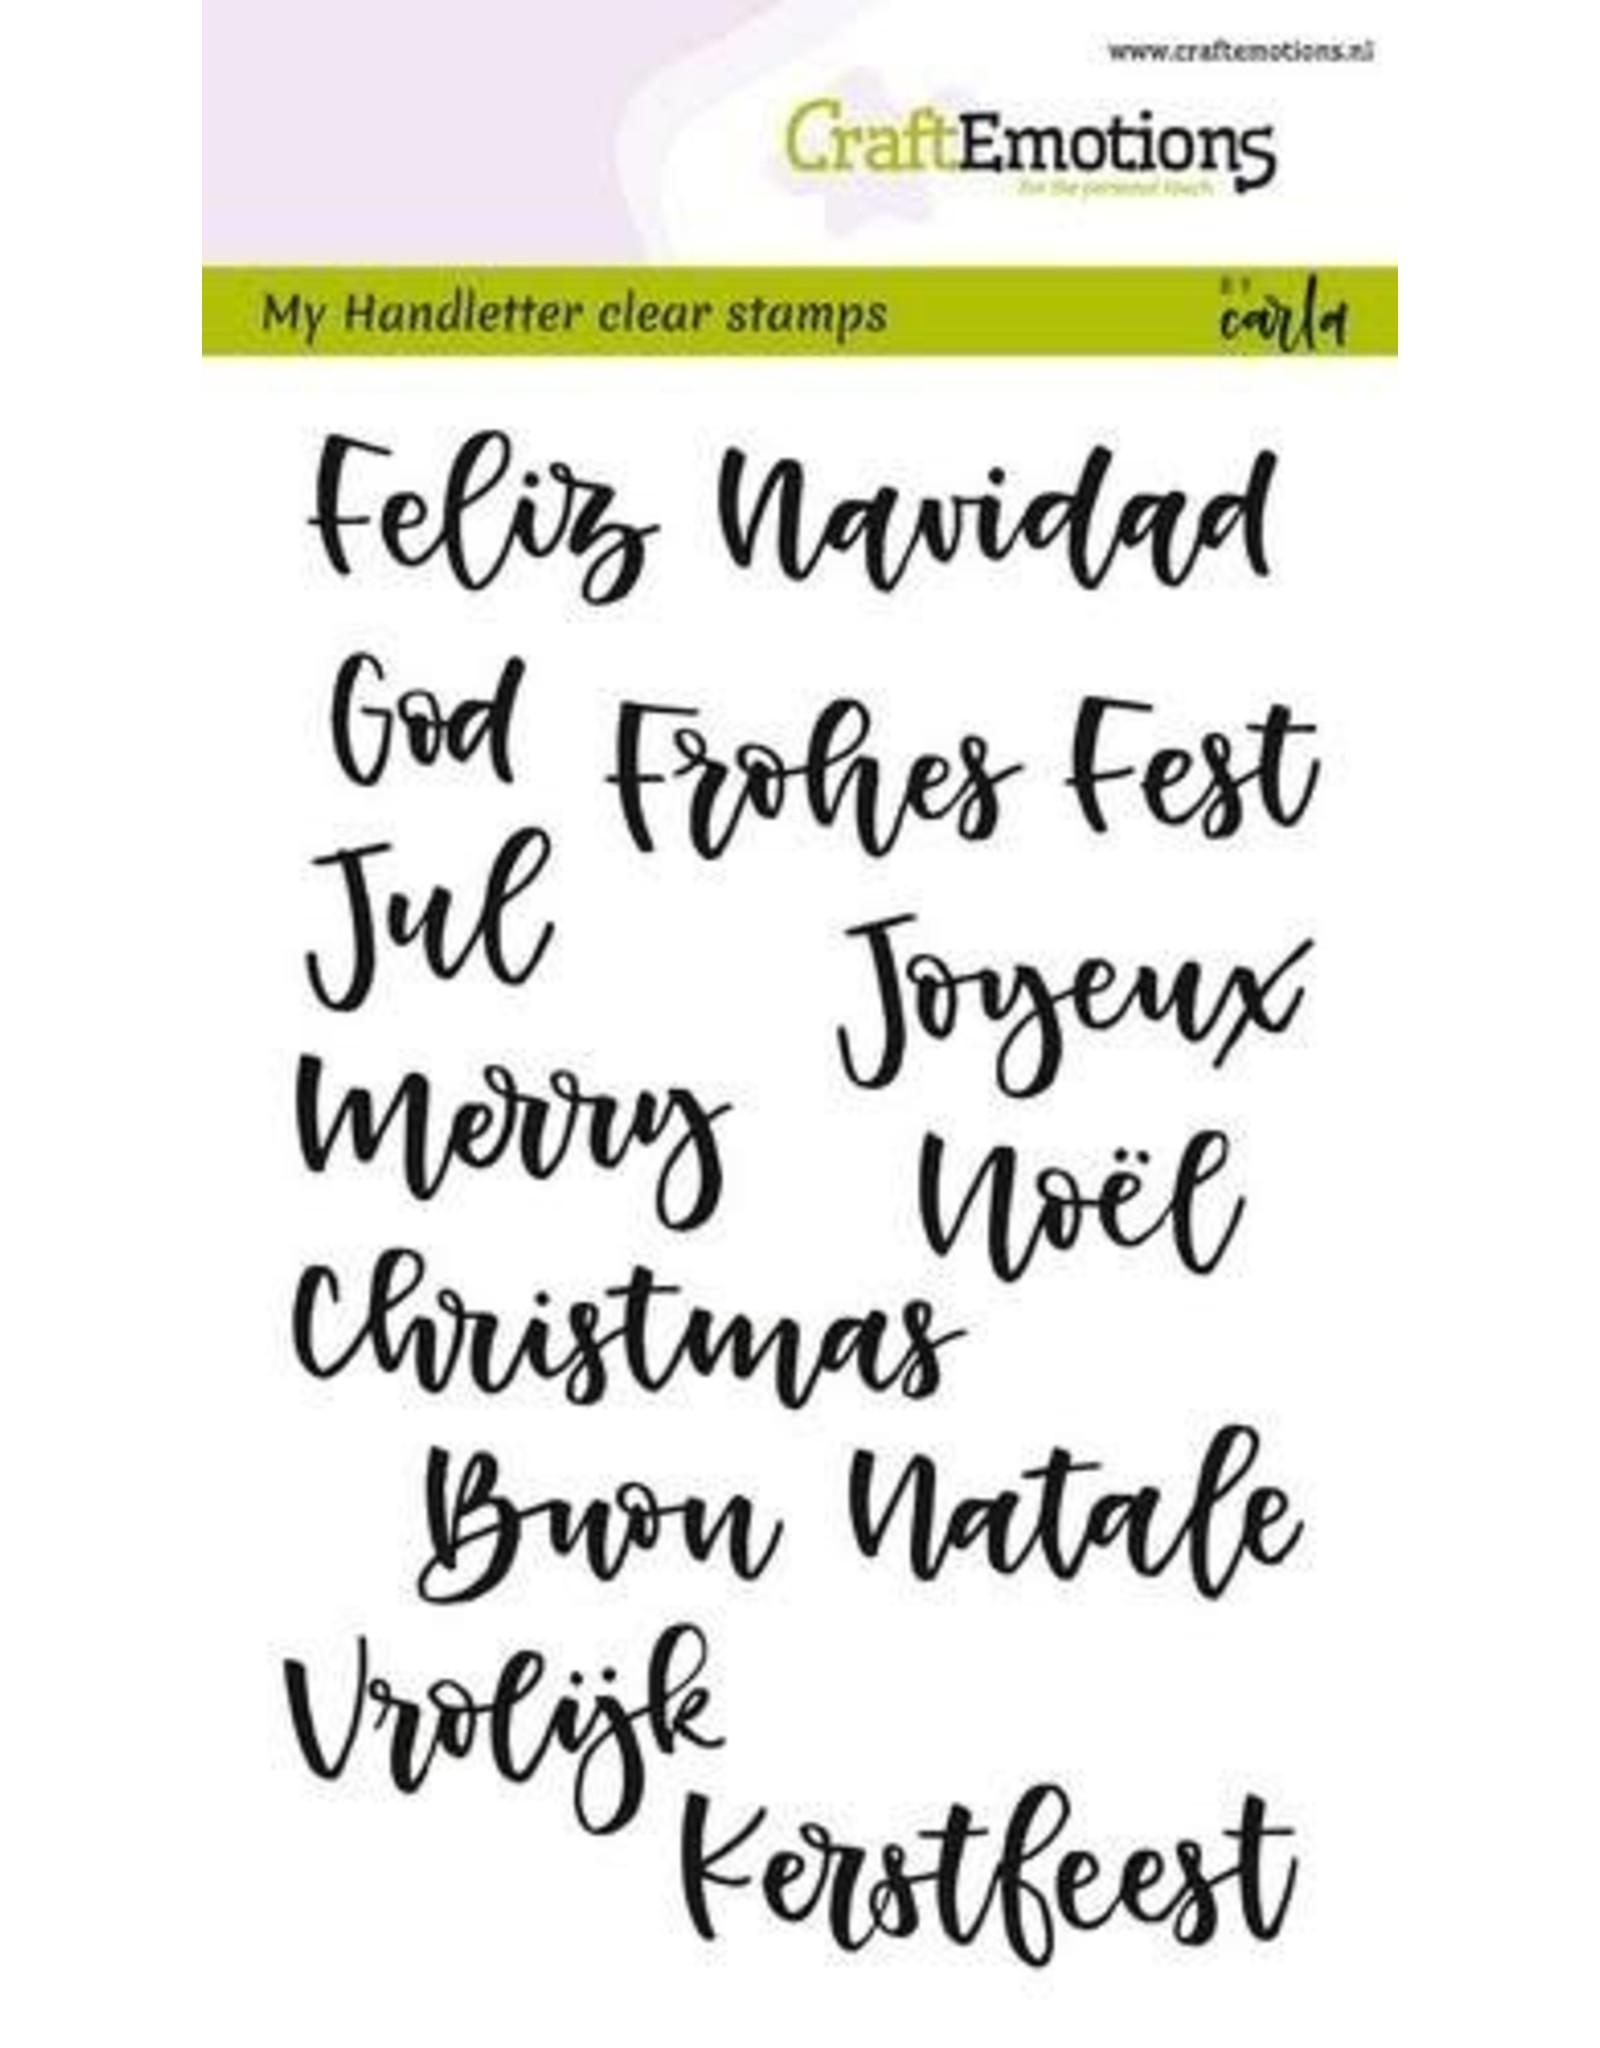 Craft Emotions CraftEmotions clearstamps A6 - handletter - kerst in 7 talen